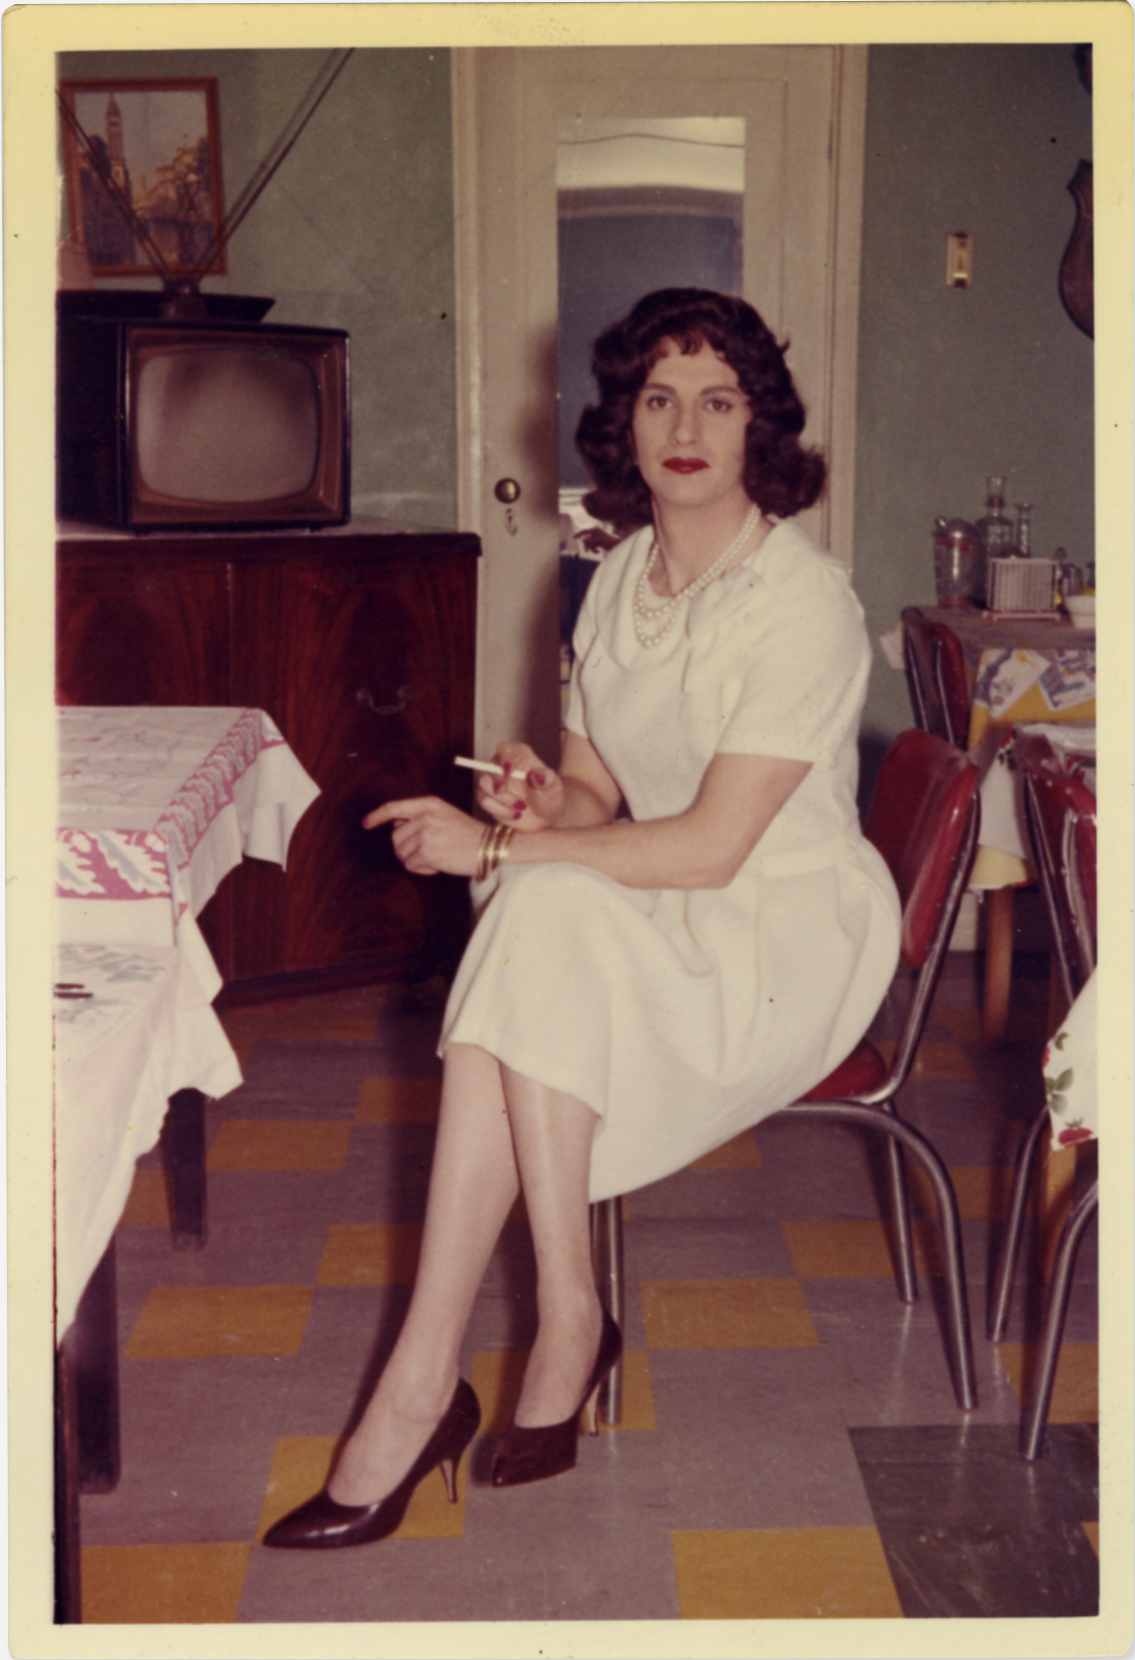 Photographs from a 1950s cross dressing retreat